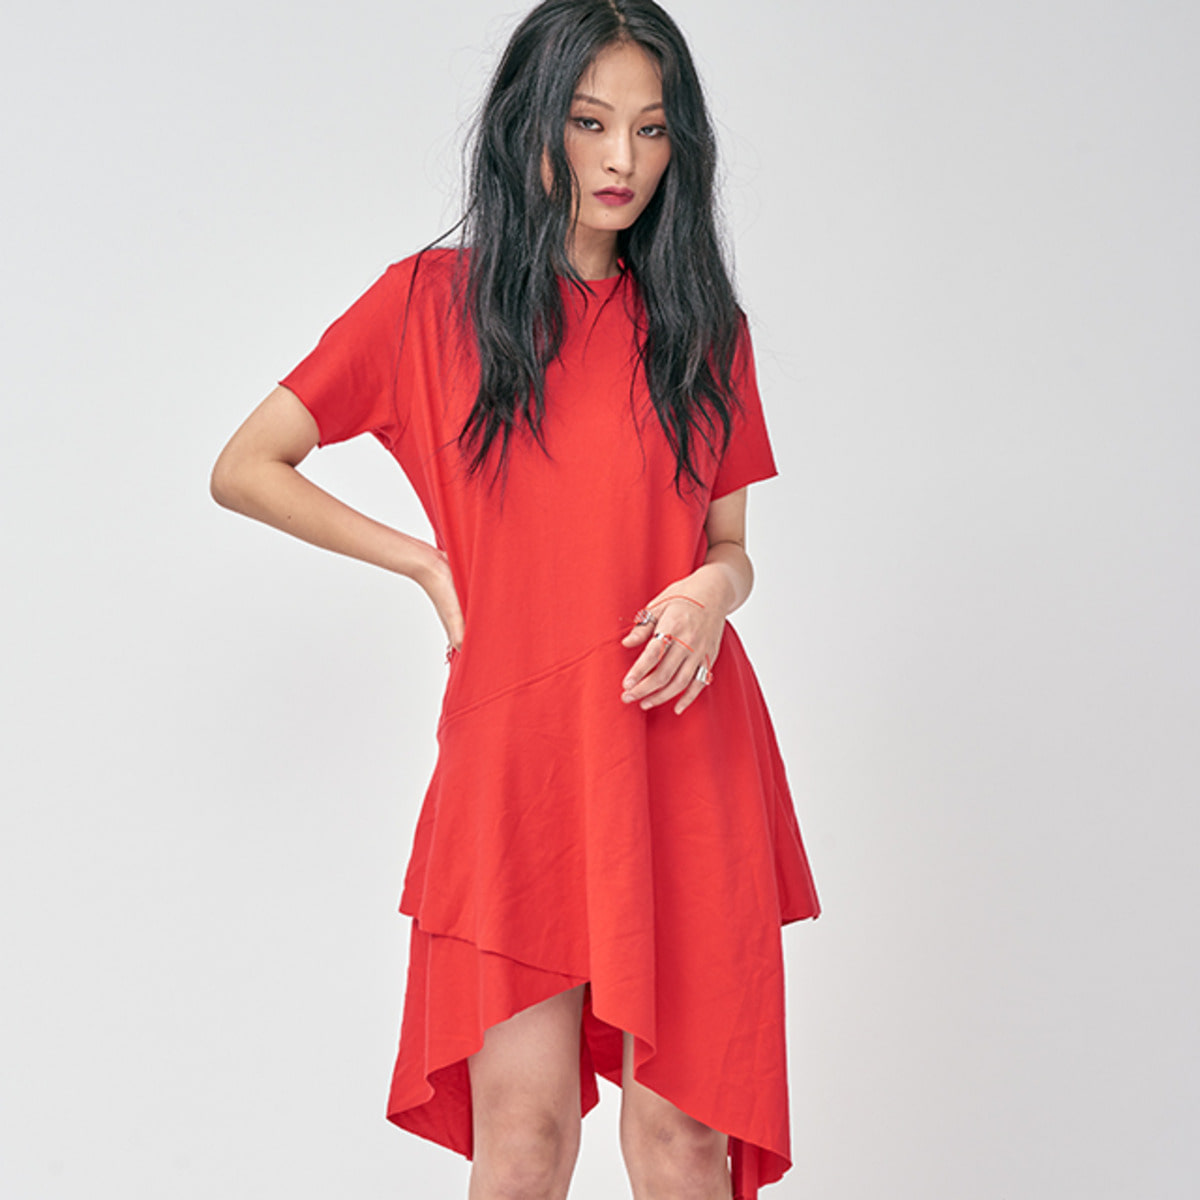 RED ASYMMETRY DRESS